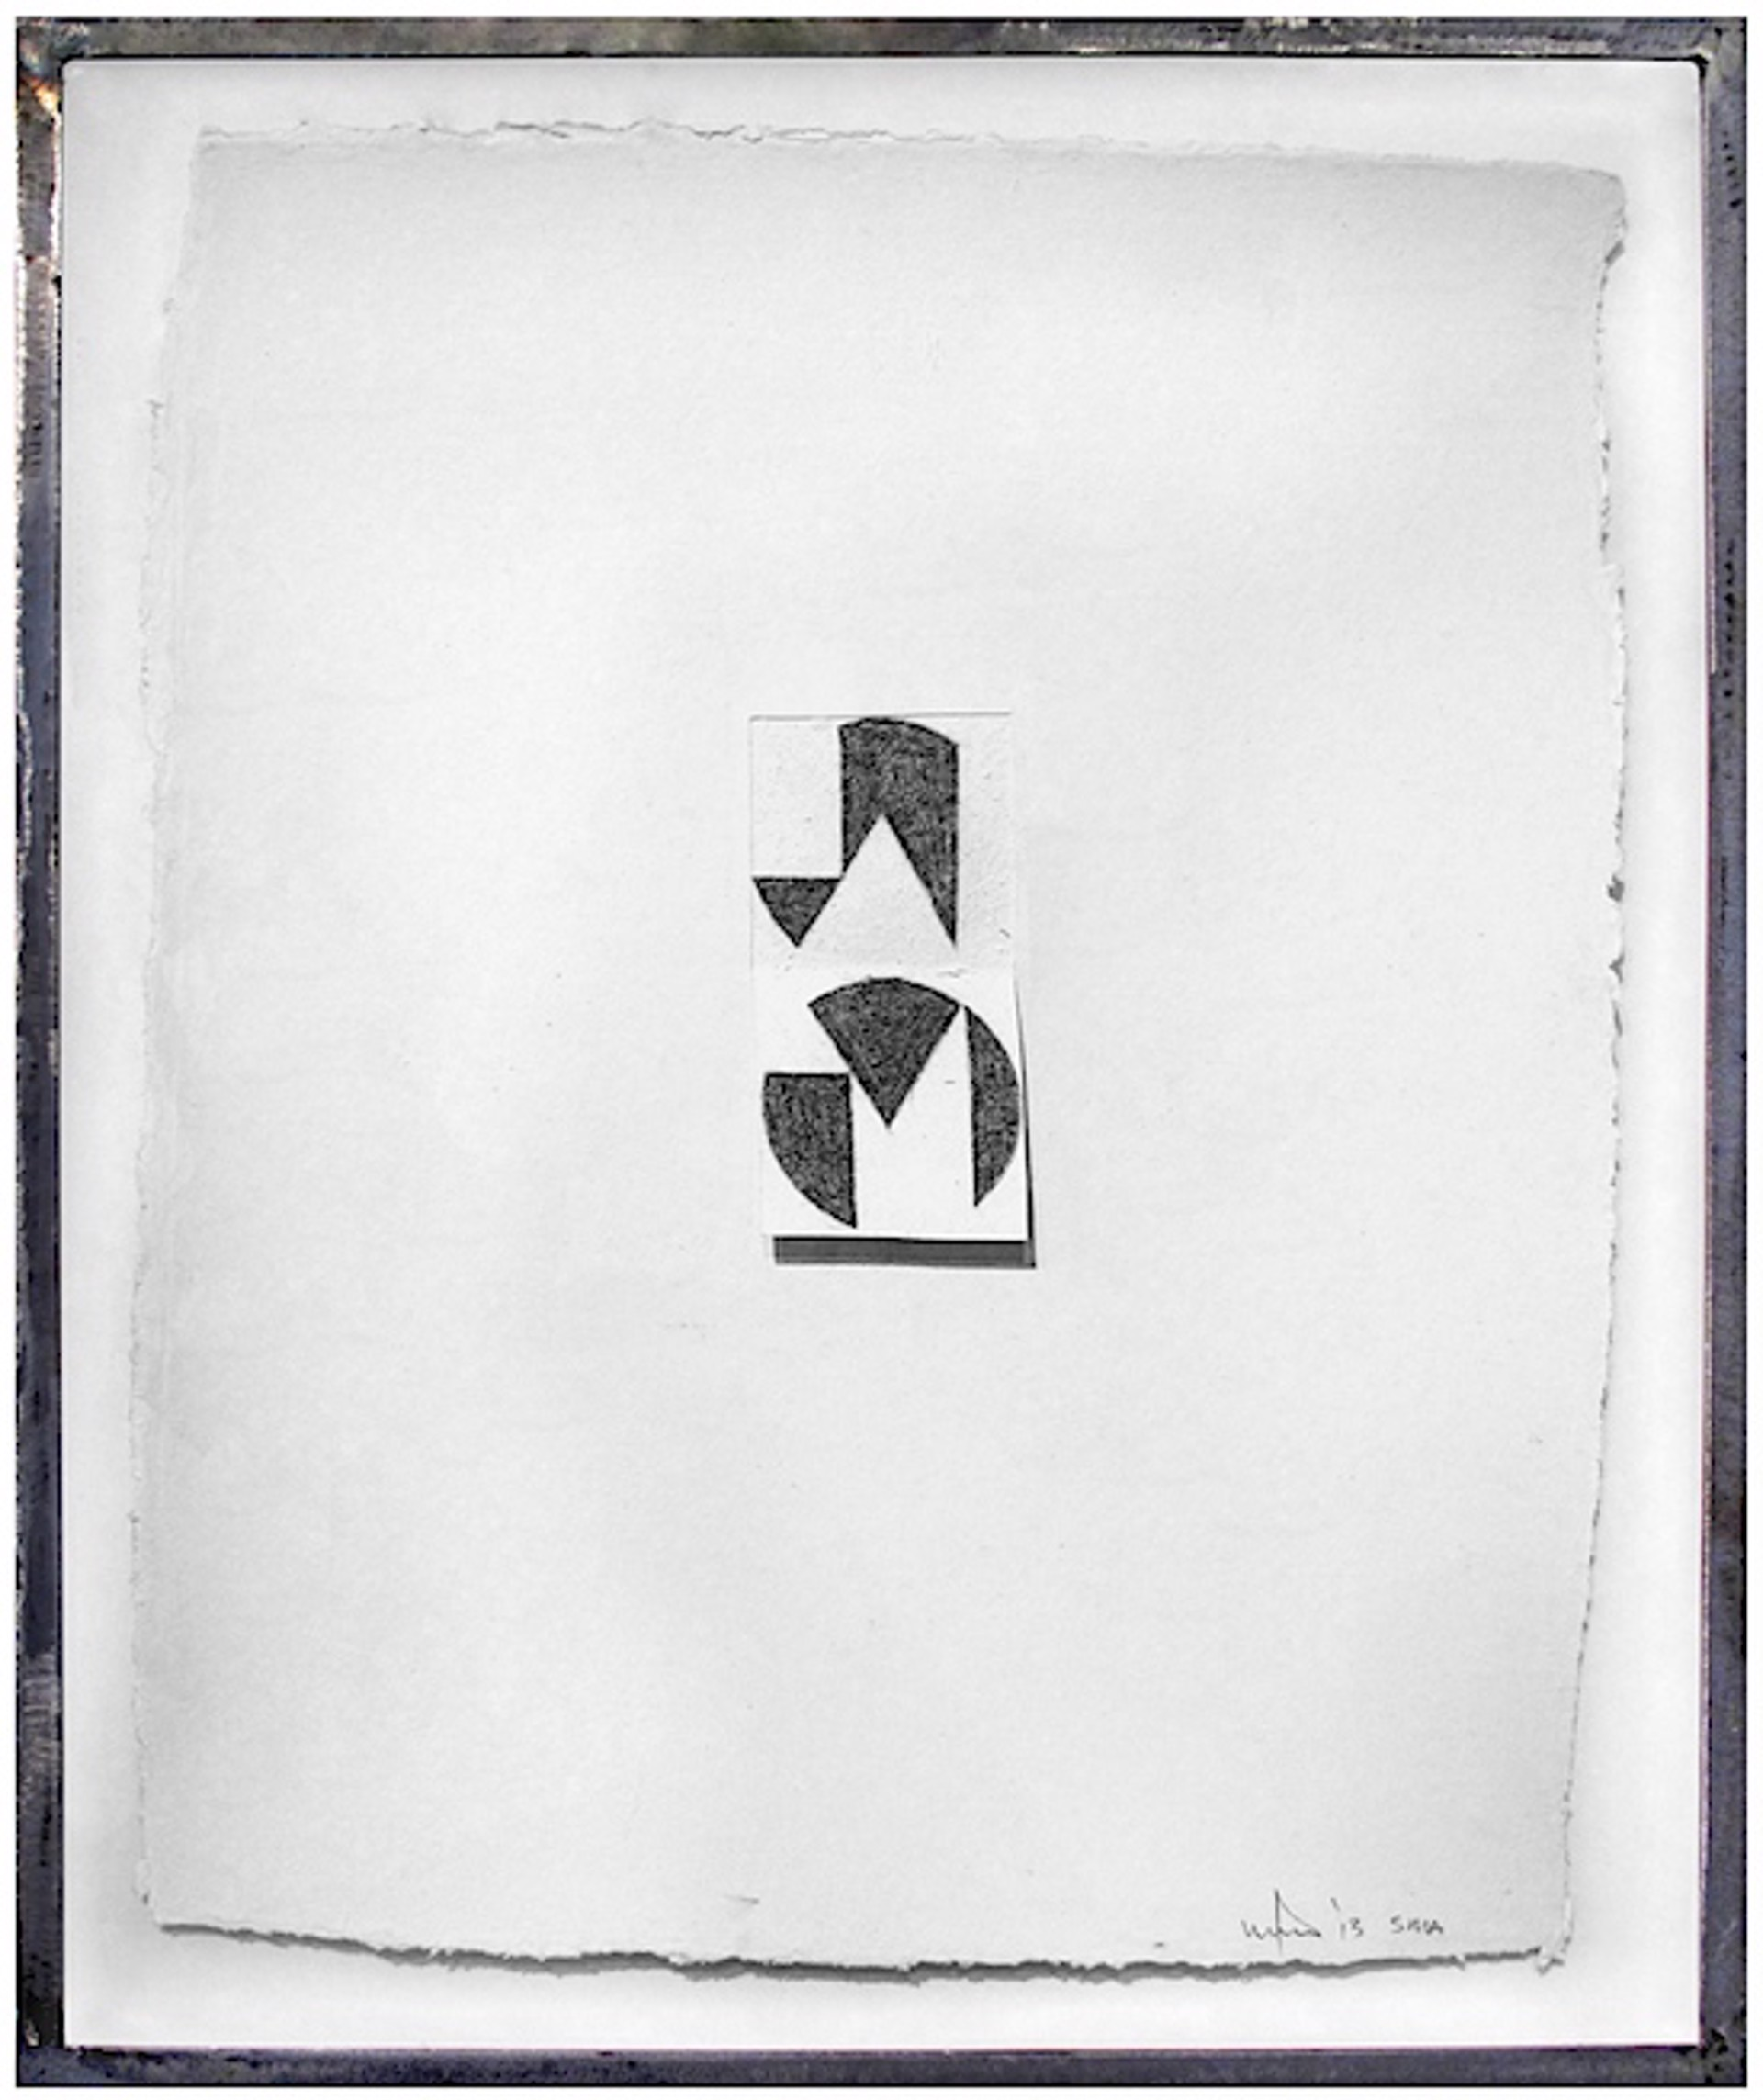 Untitled (SMA VII) by William Fares